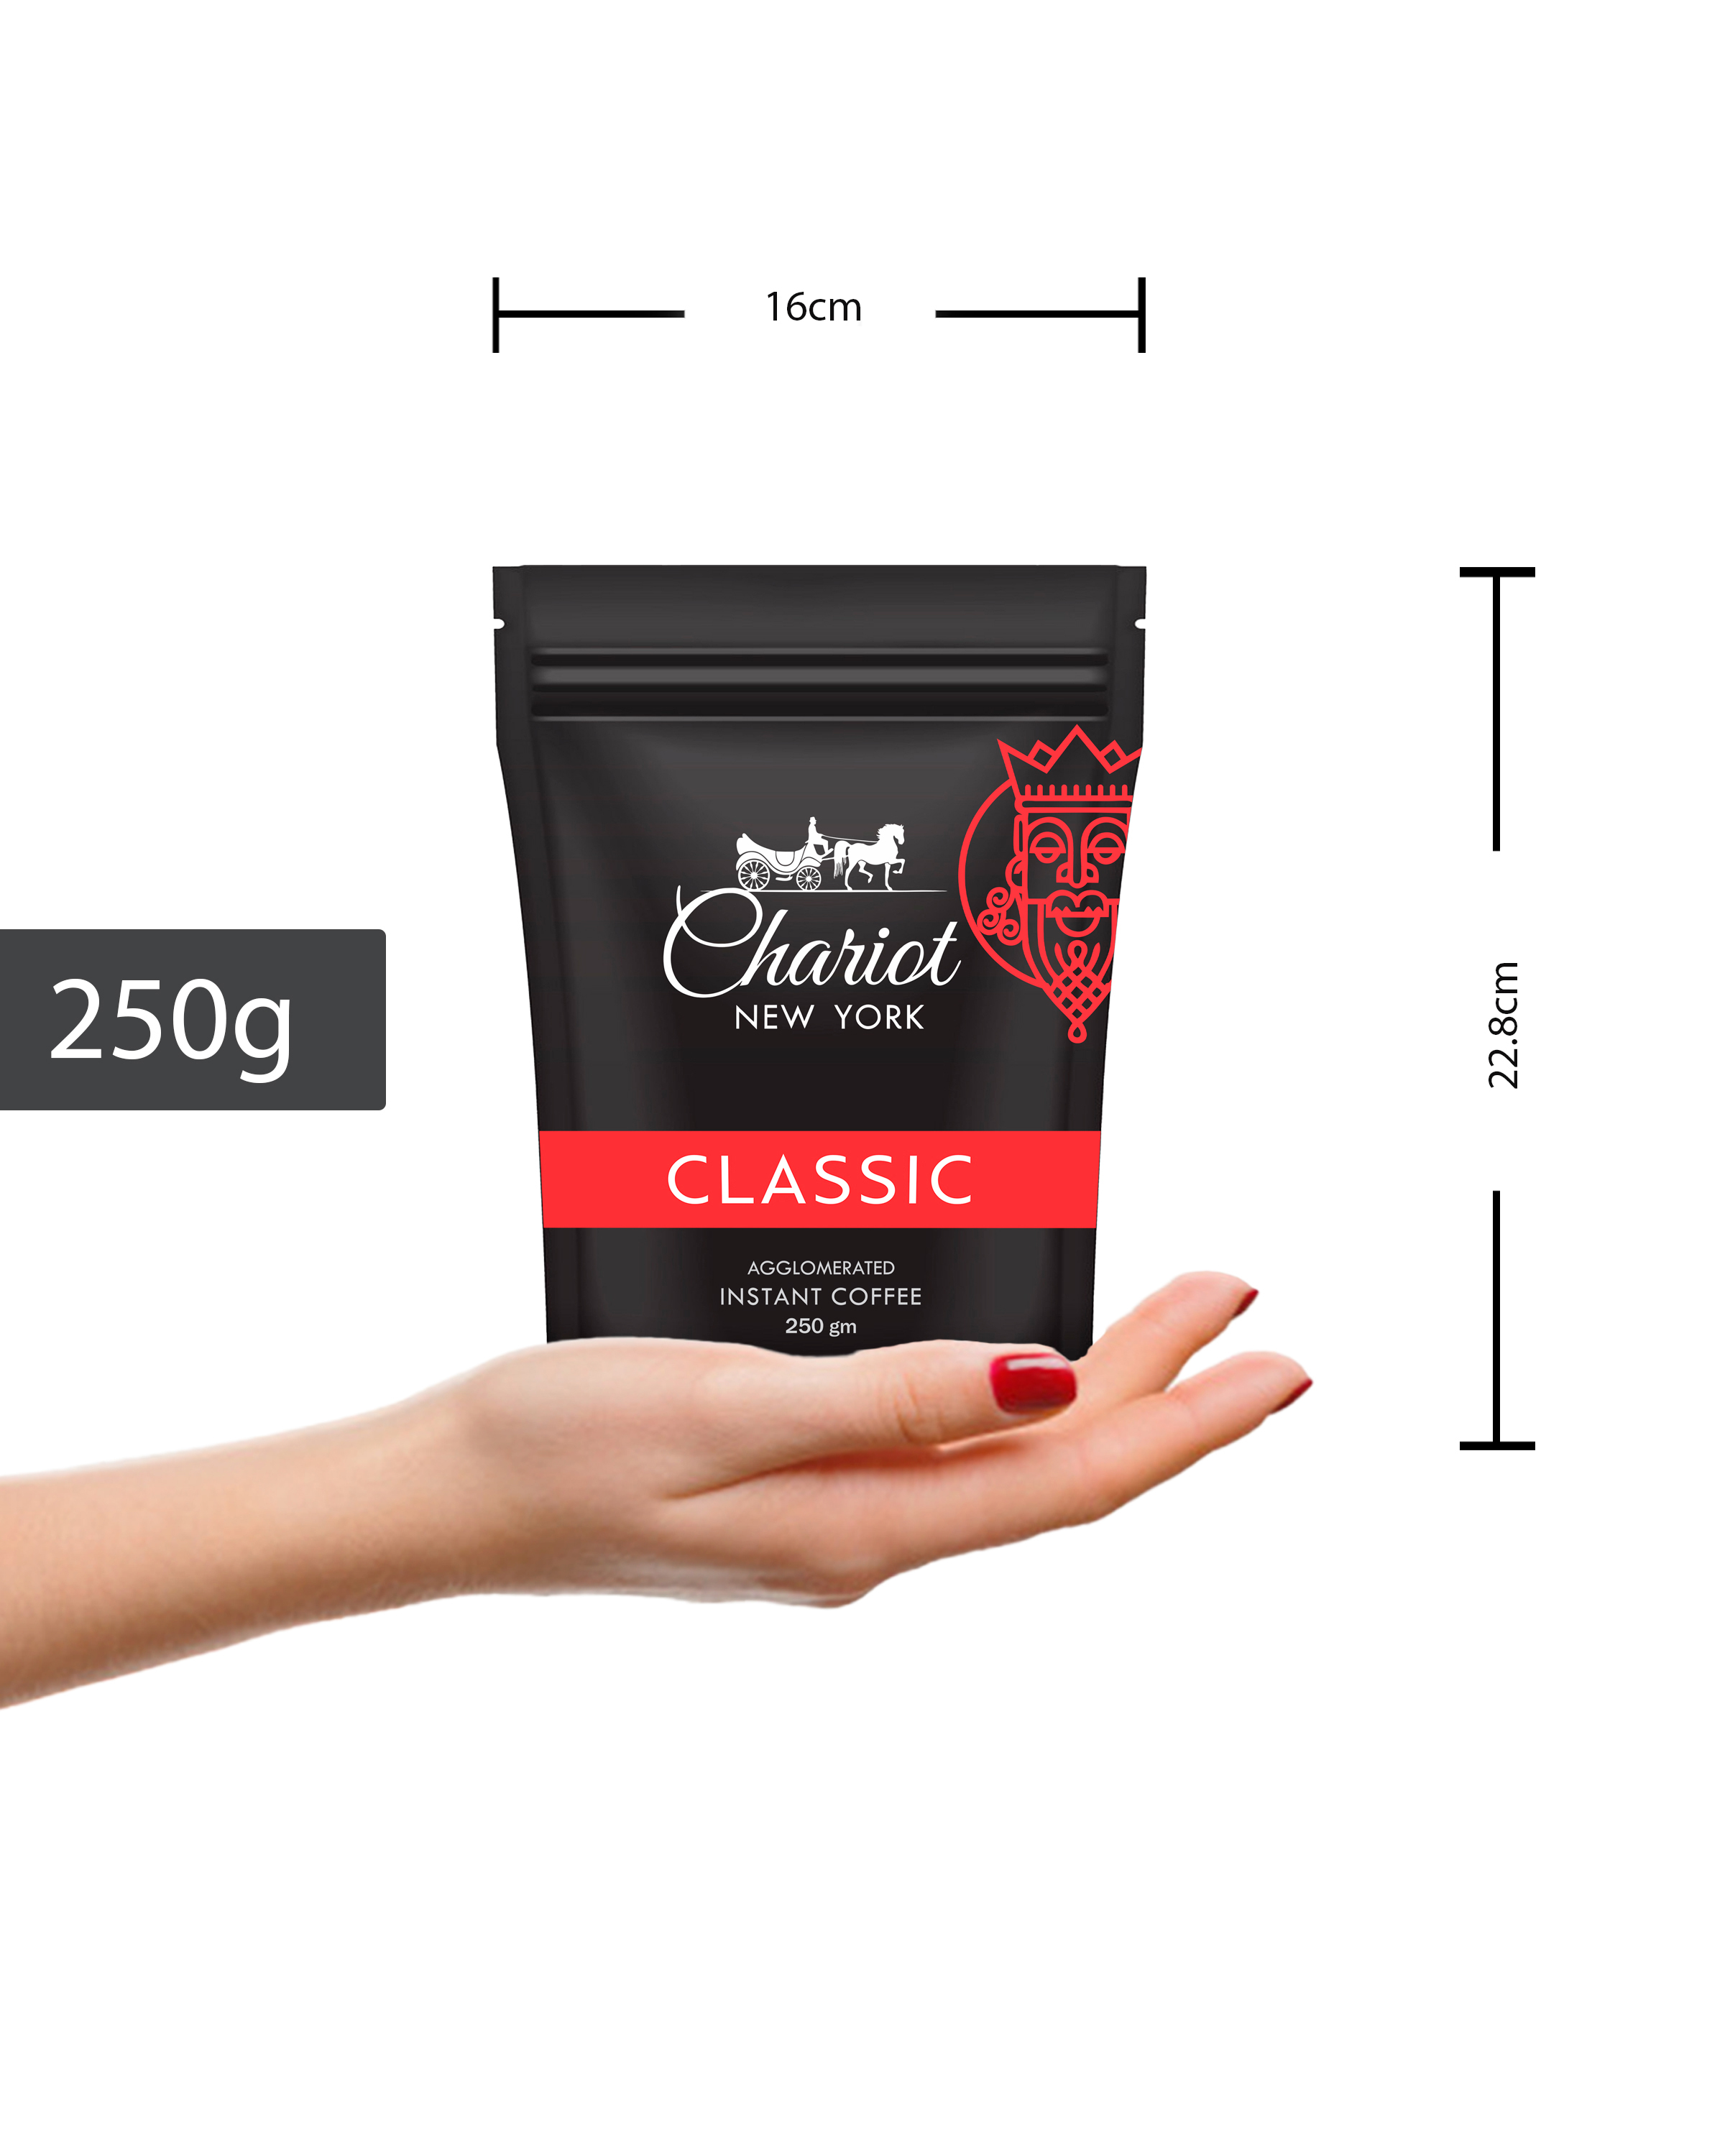 Chariot New York Classic Instant Coffee 250 gm Pouch